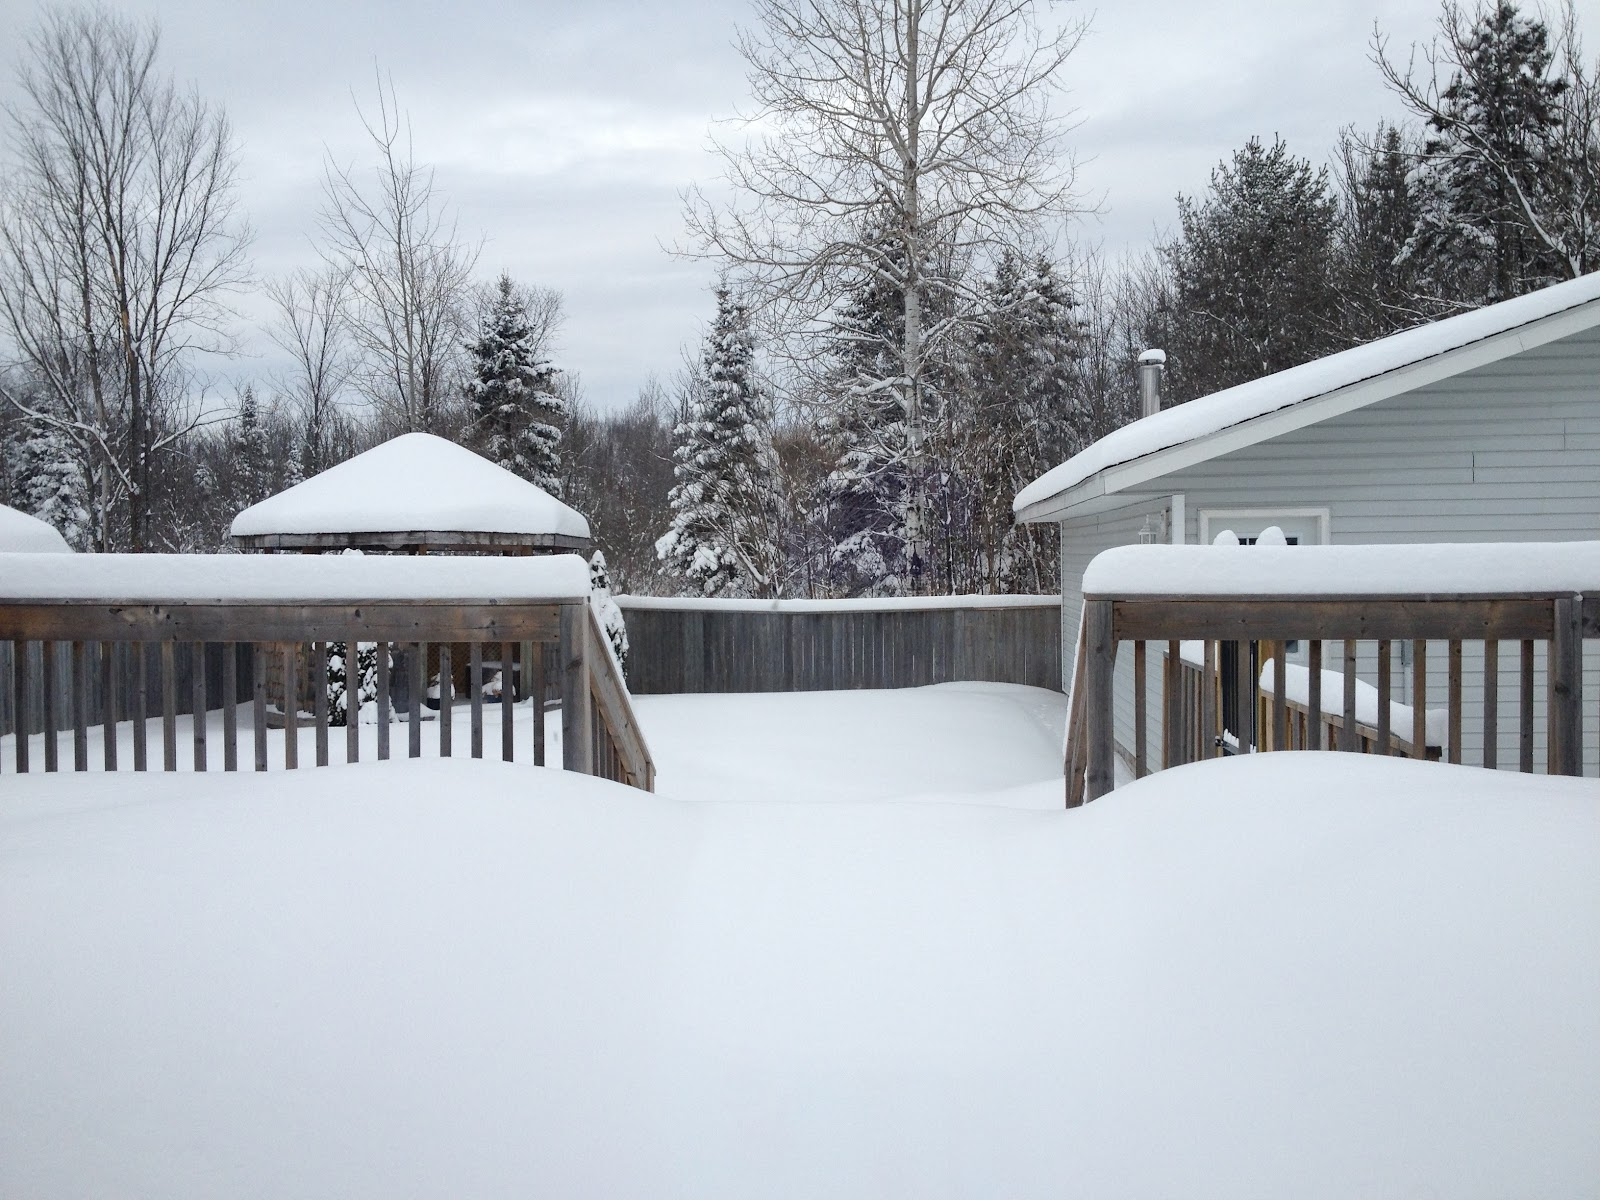 View of snow covered deck, backyard and trees.